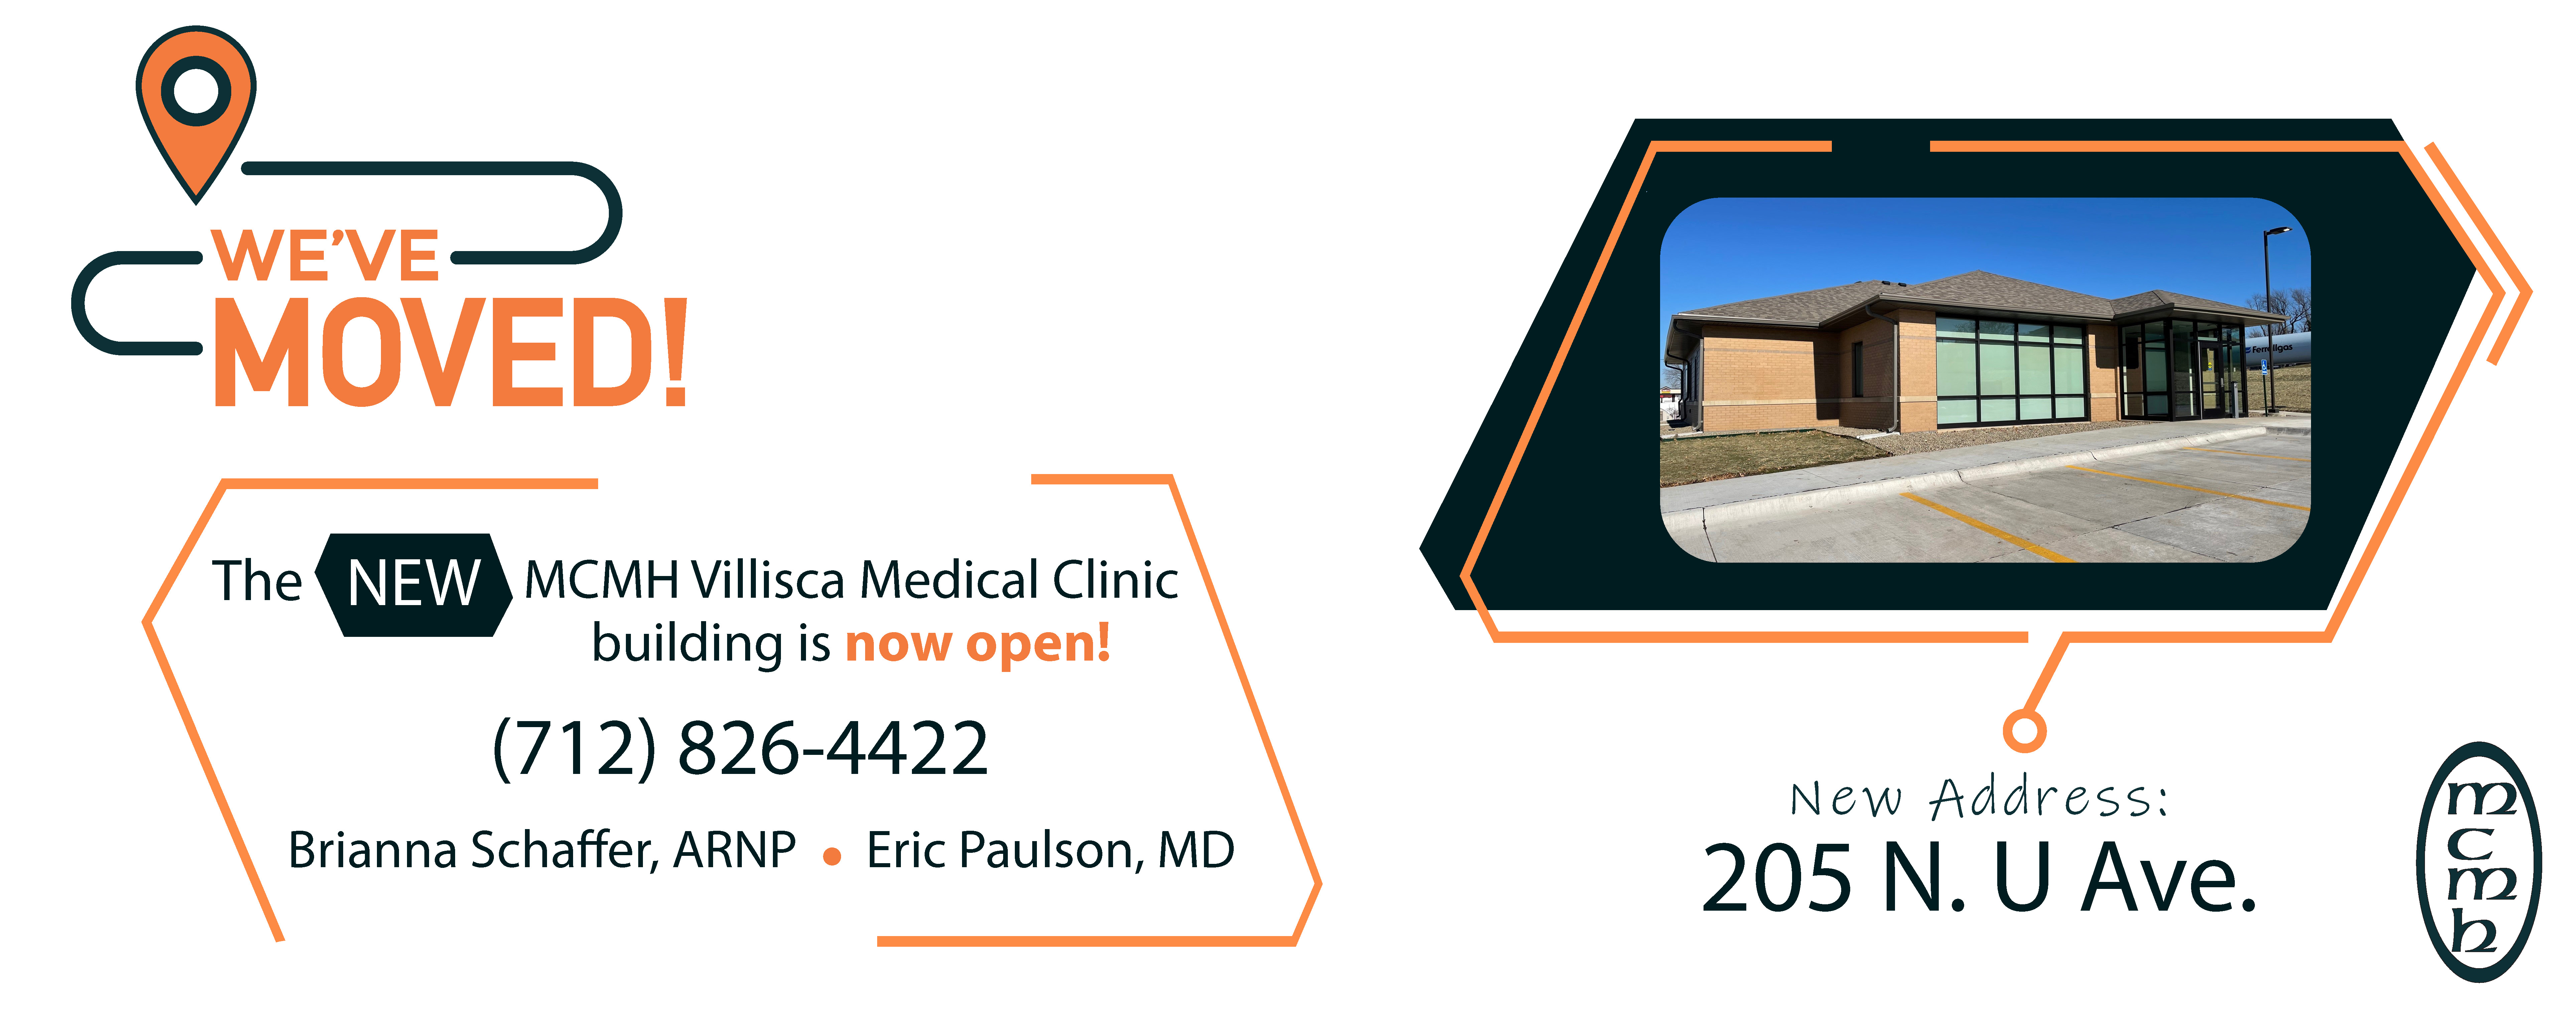 The new MCMH Villisca Medical Clinic building is now open!